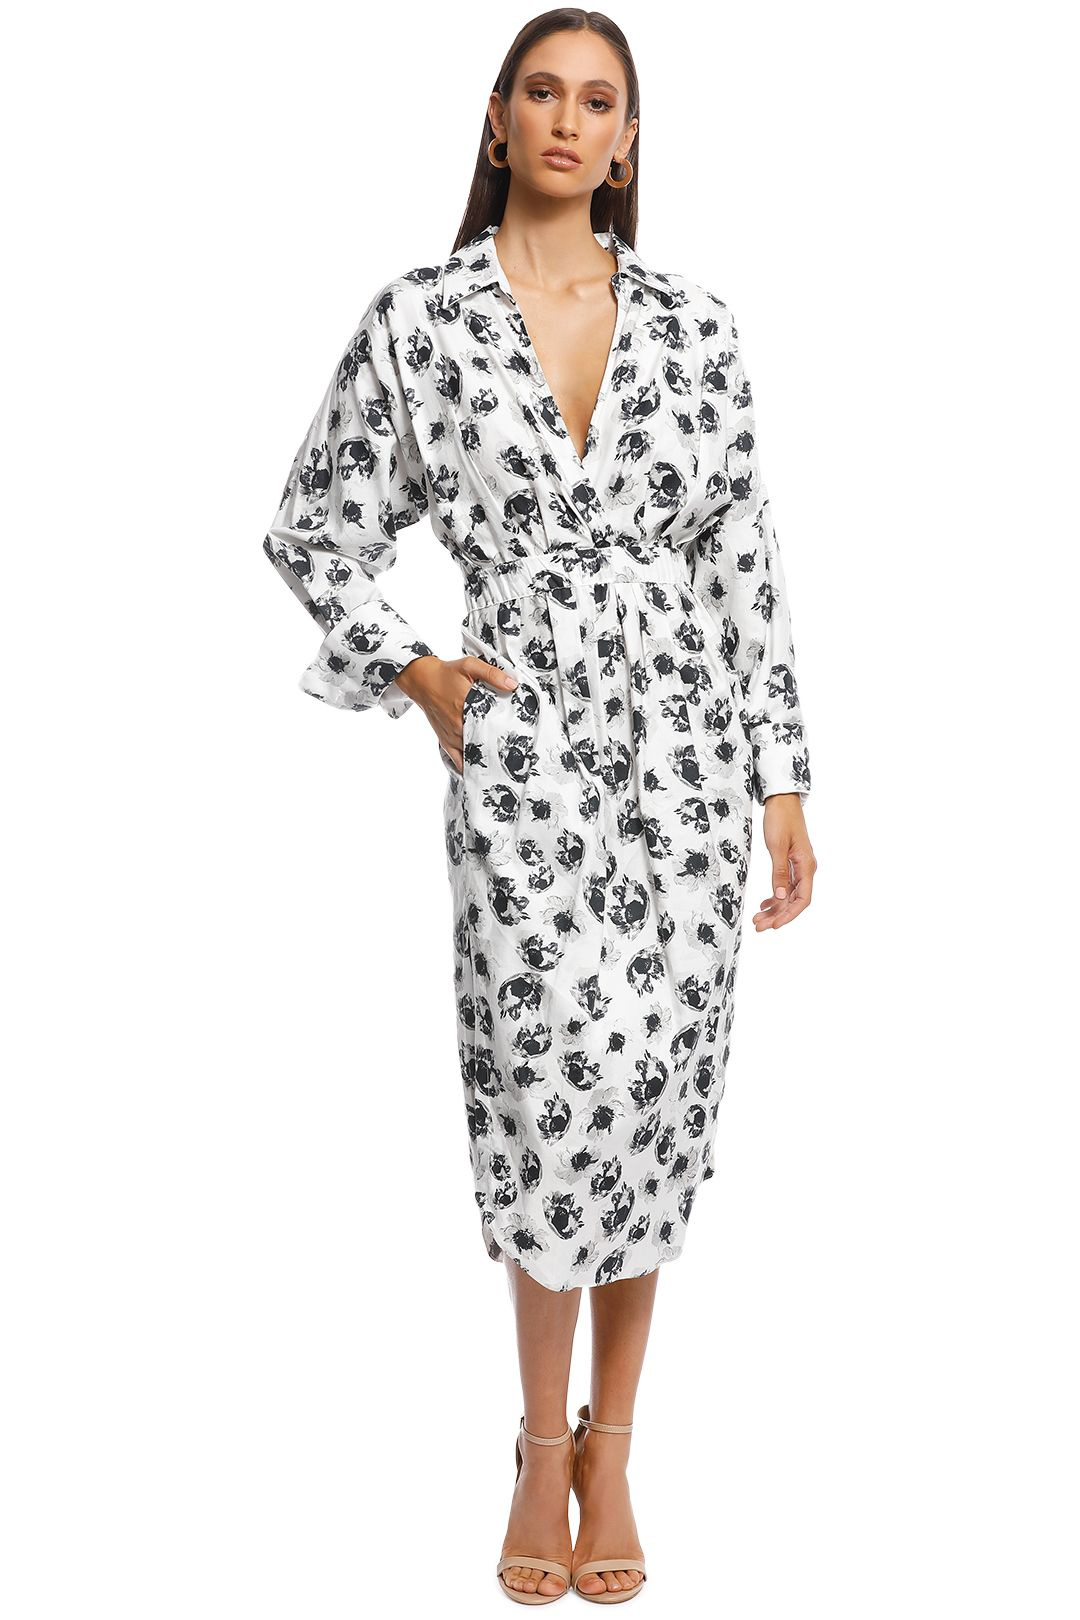 Camilla and Marc - Astra Midi Dress - Black and White - Front